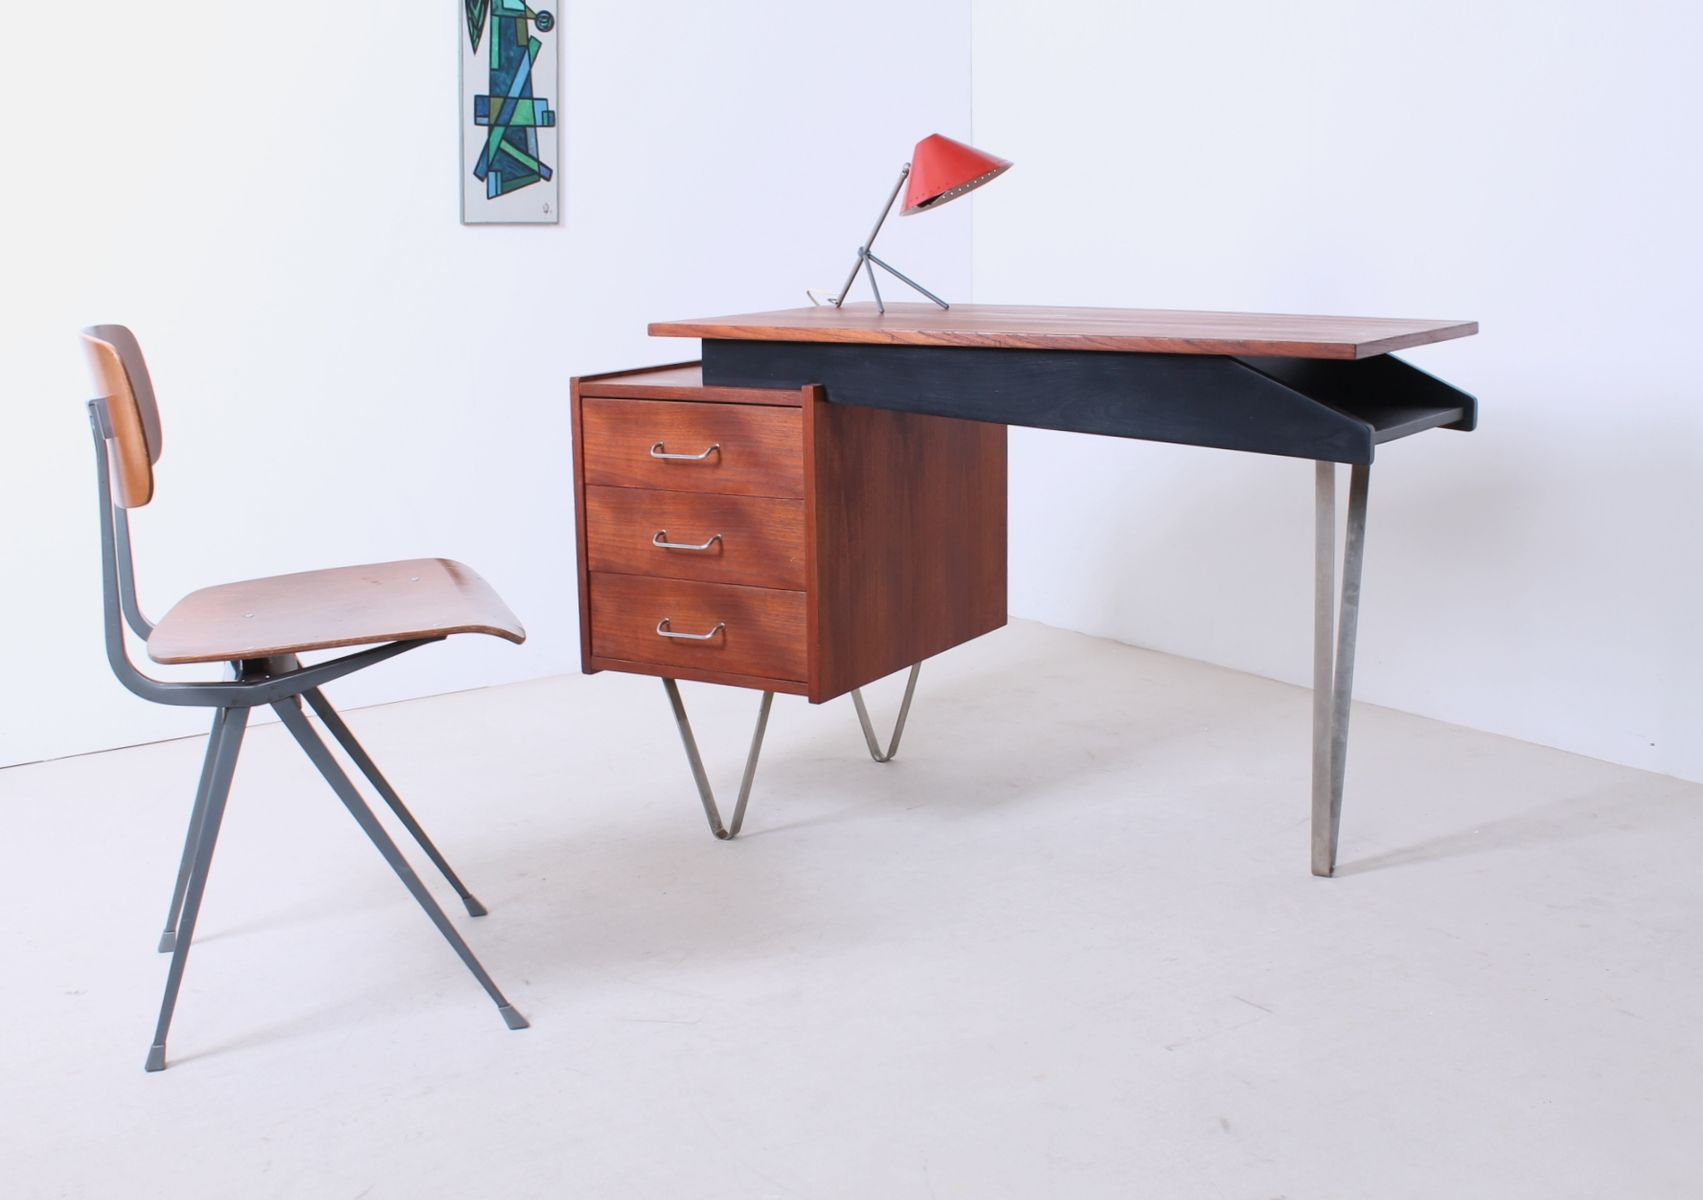 Teak Writing Desk with Hairpin Legs by Cees Braakman for Pastoe